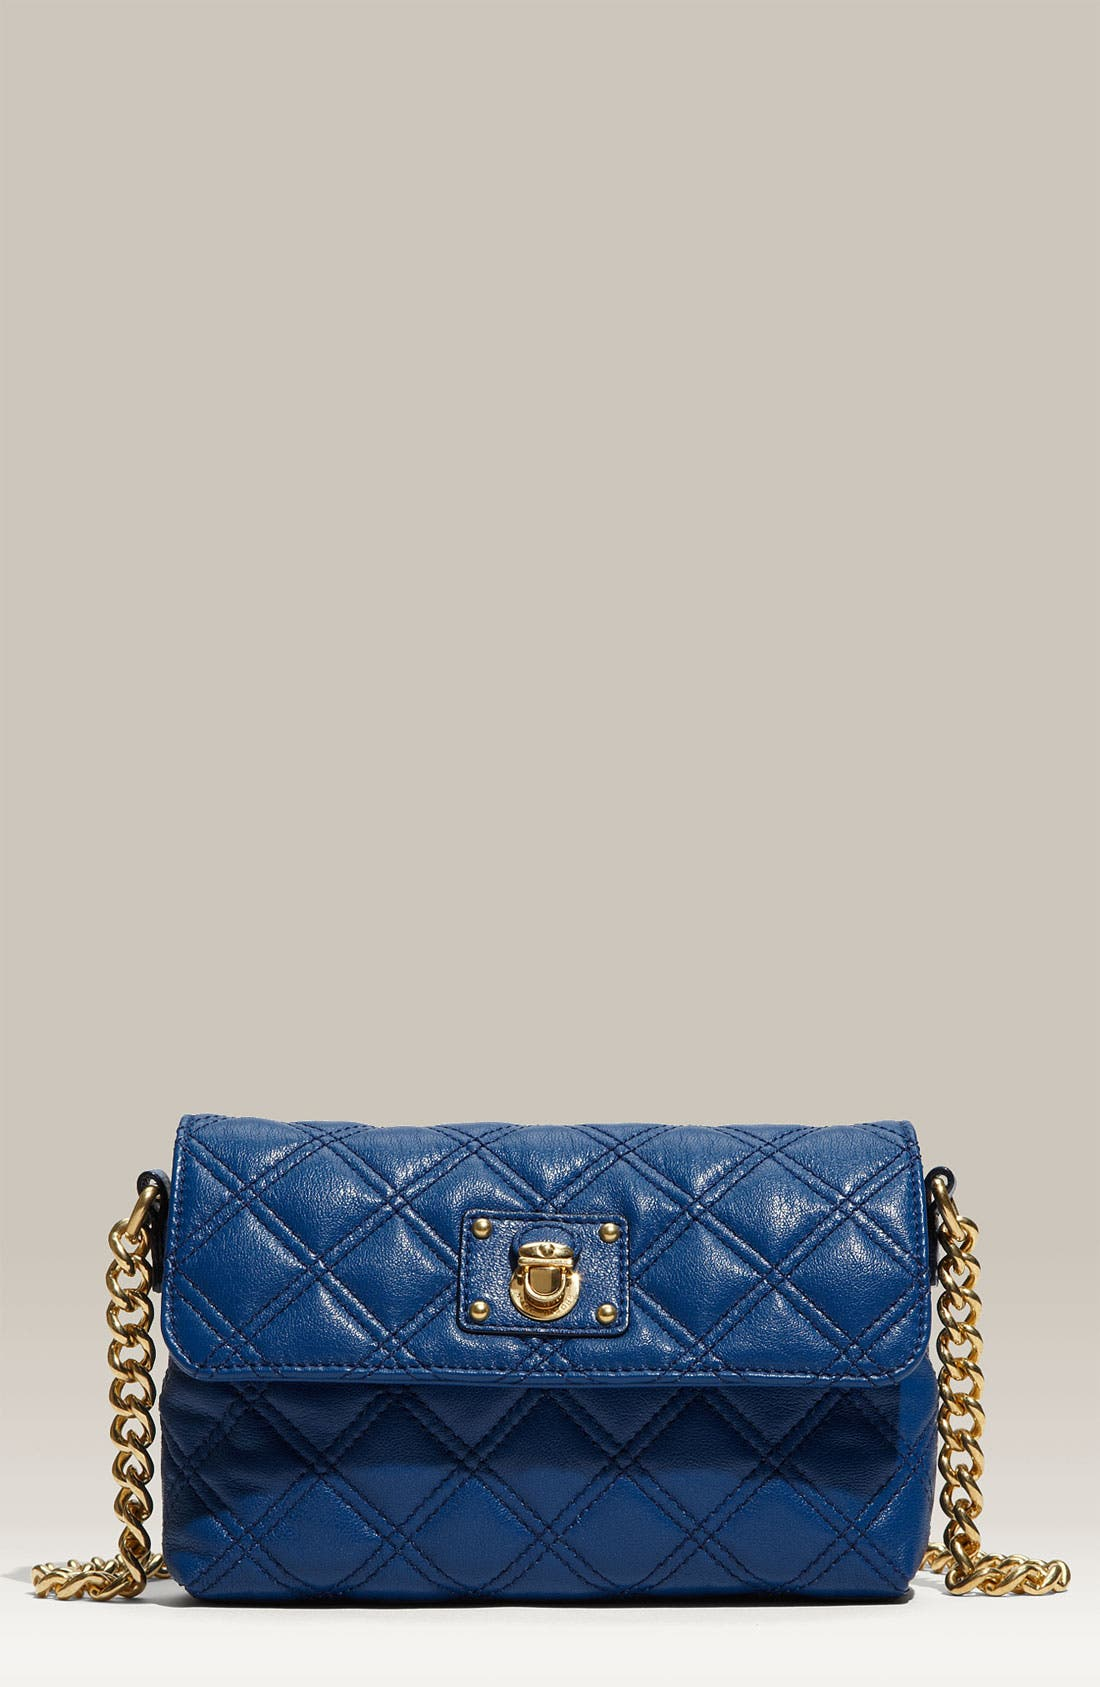 Alternate Image 1 Selected - MARC JACOBS 'The Single' Quilted Crossbody Bag